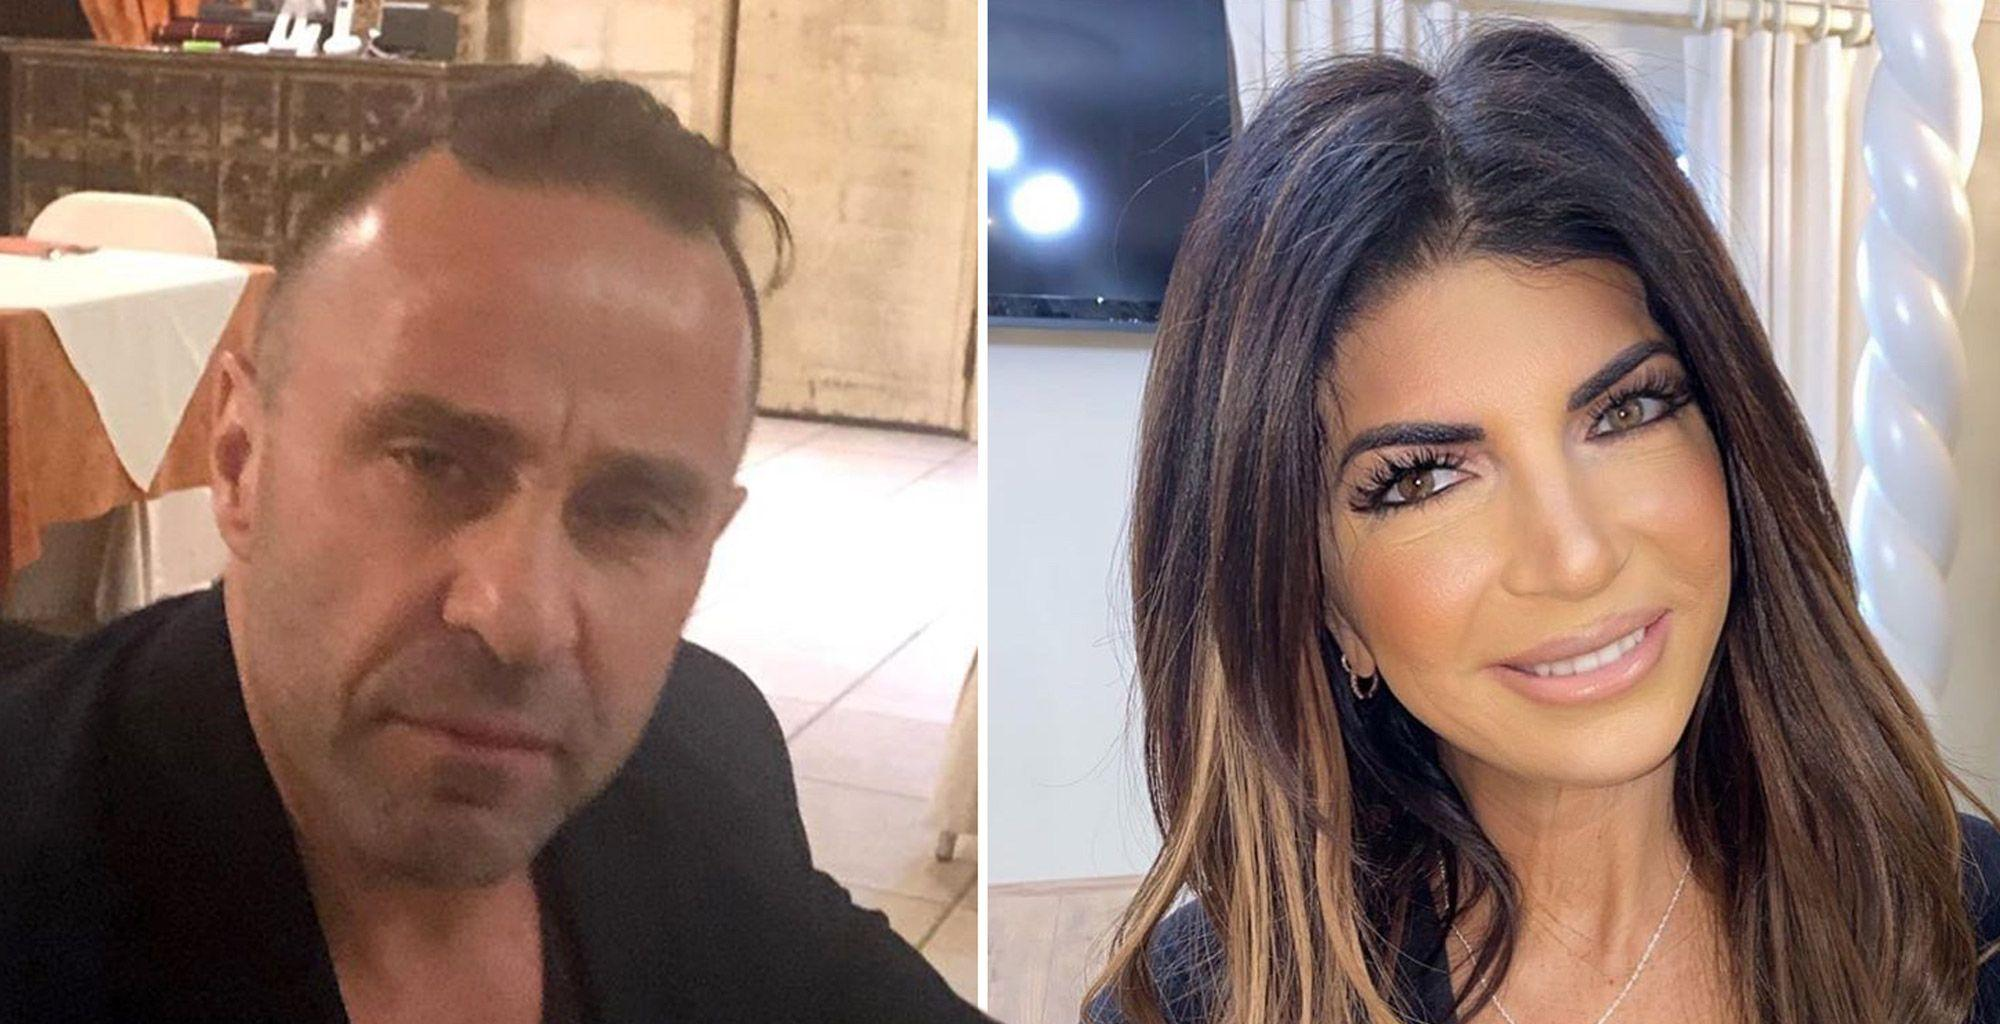 Joe Giudice Claims He Does Not 'Miss Being Married' To Teresa Giudice - Here's Why!